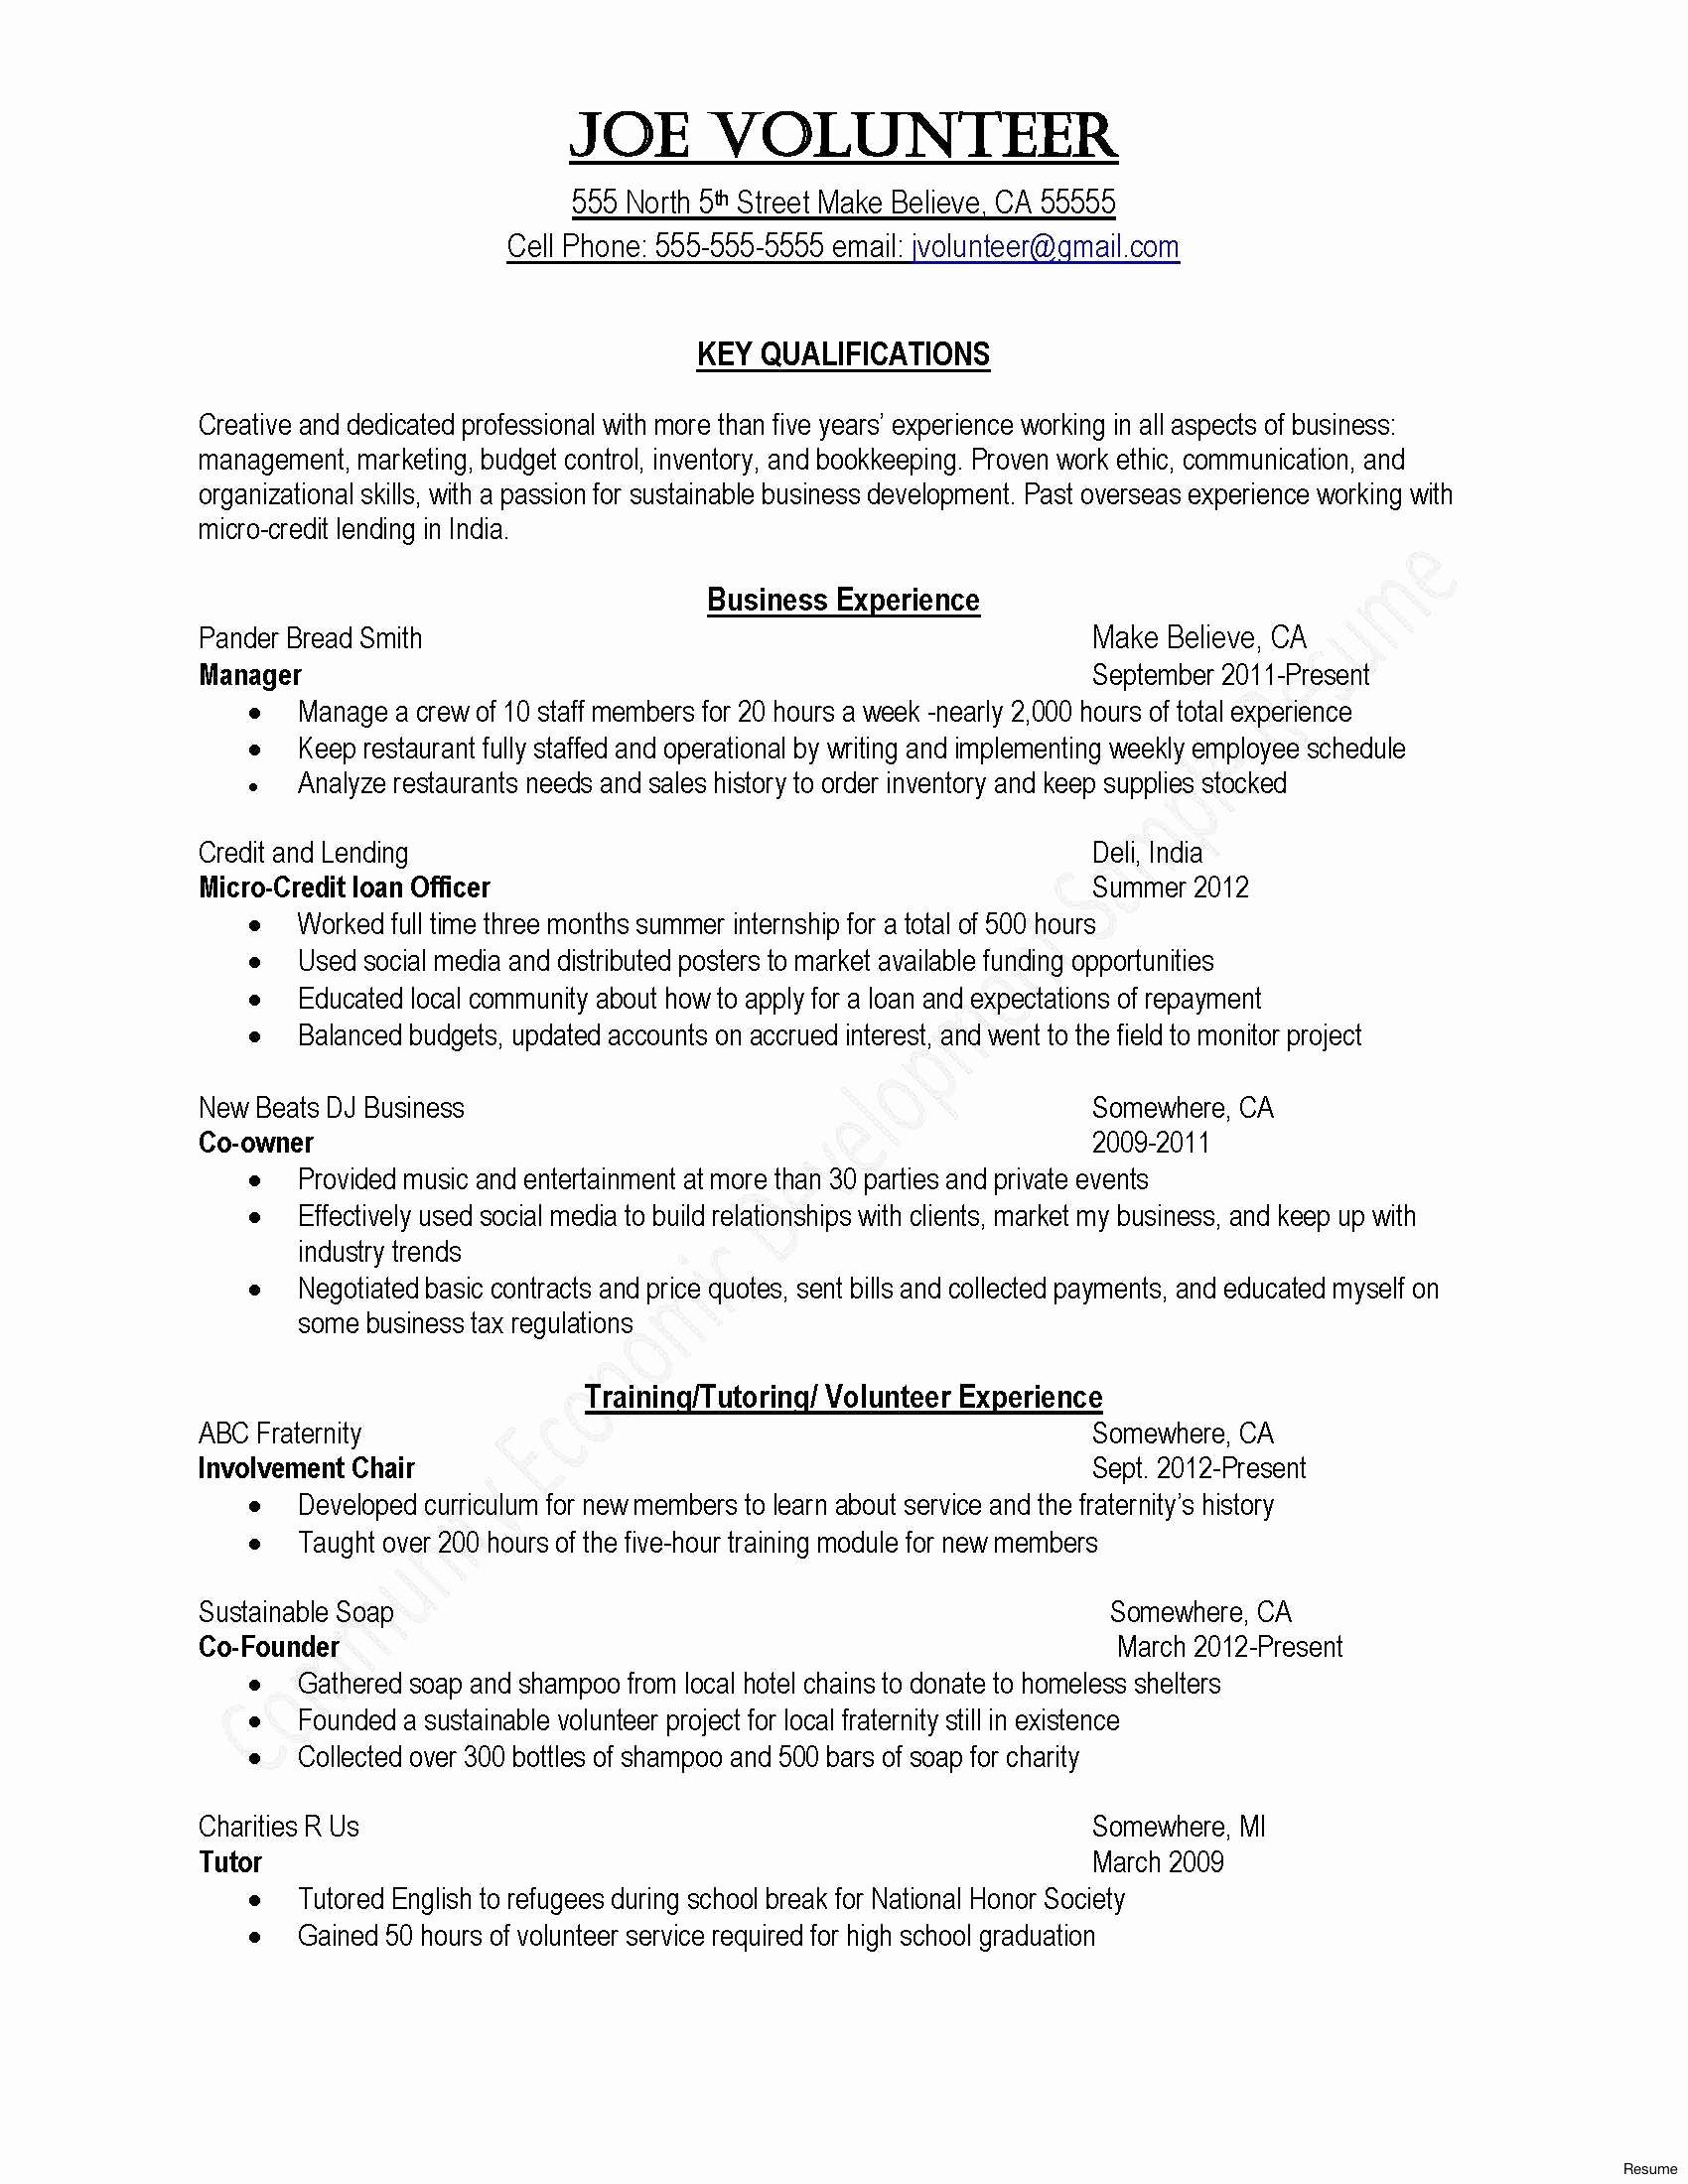 Microsoft Word Resume Cover Letter Template - Law Enforcement Resume Template Unique Resume Cover Letter Template